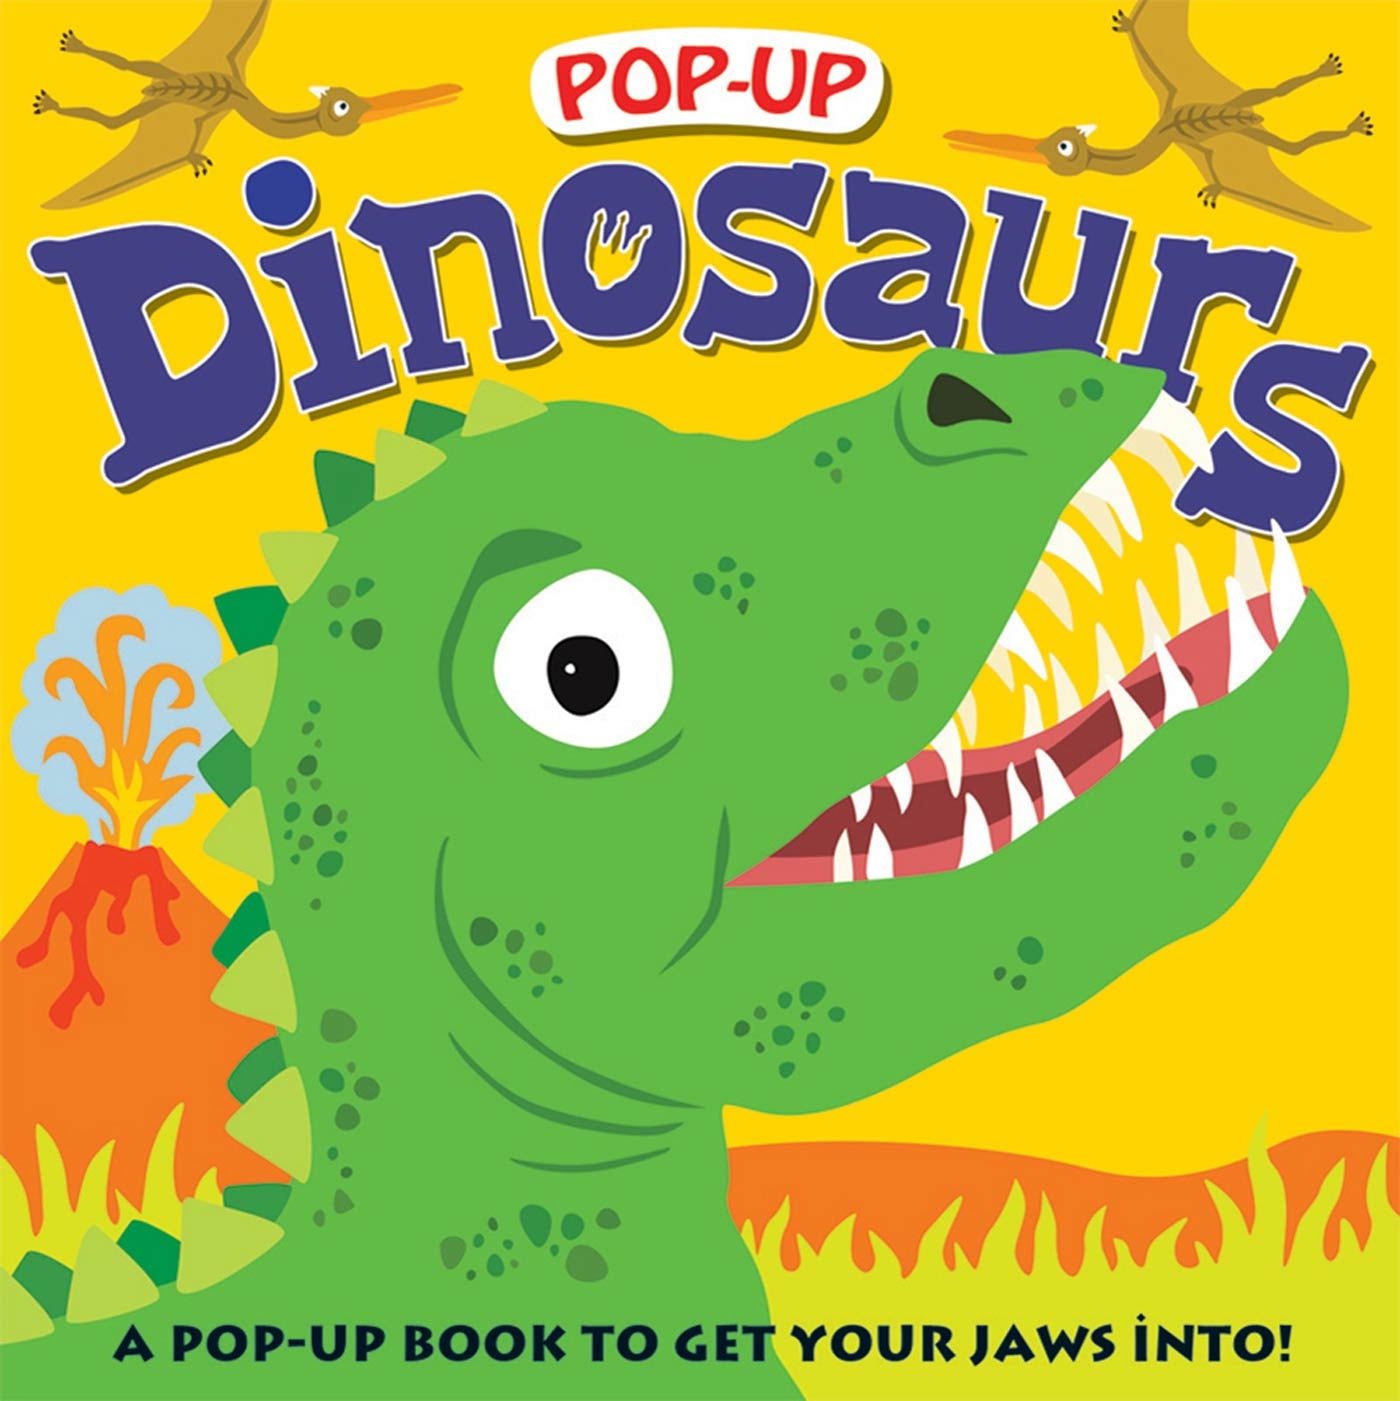 Pop-up Dinosaurs : A Pop-Up Book to Get Your Jaws Into